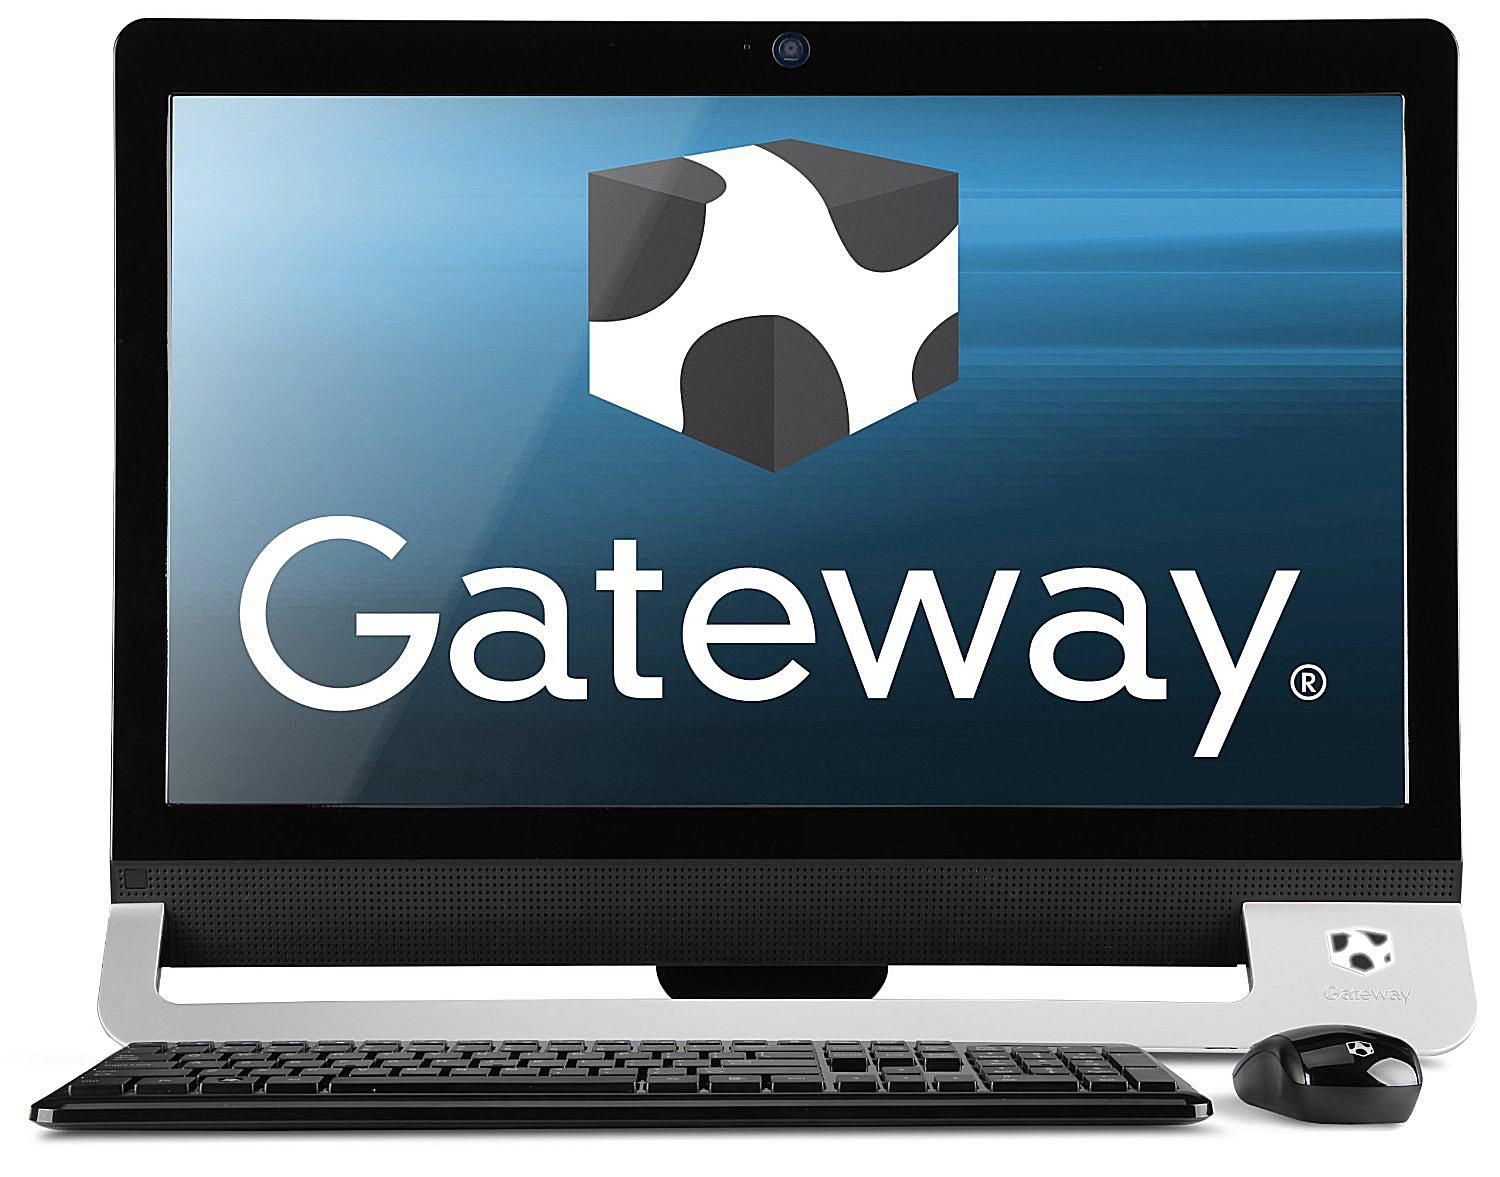 RBC Wealth Management to anchor Gateway offices - The Journal